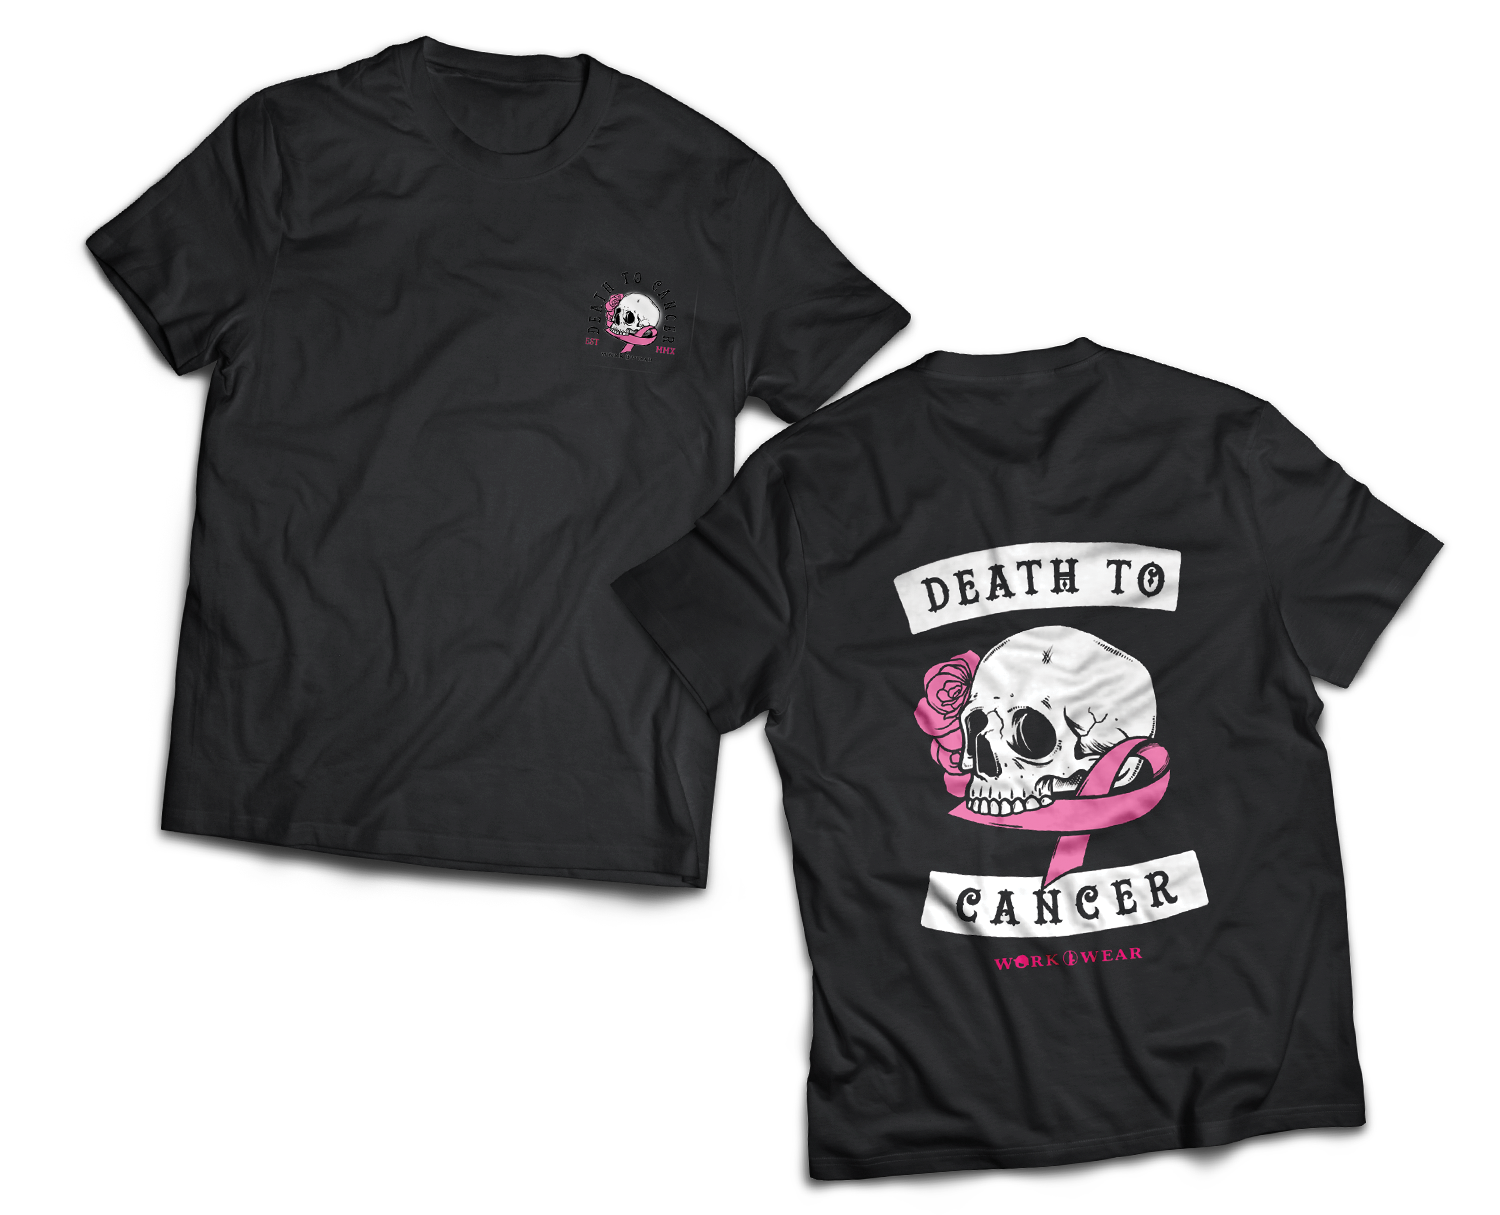 Death to Cancer Shirts - $24.99